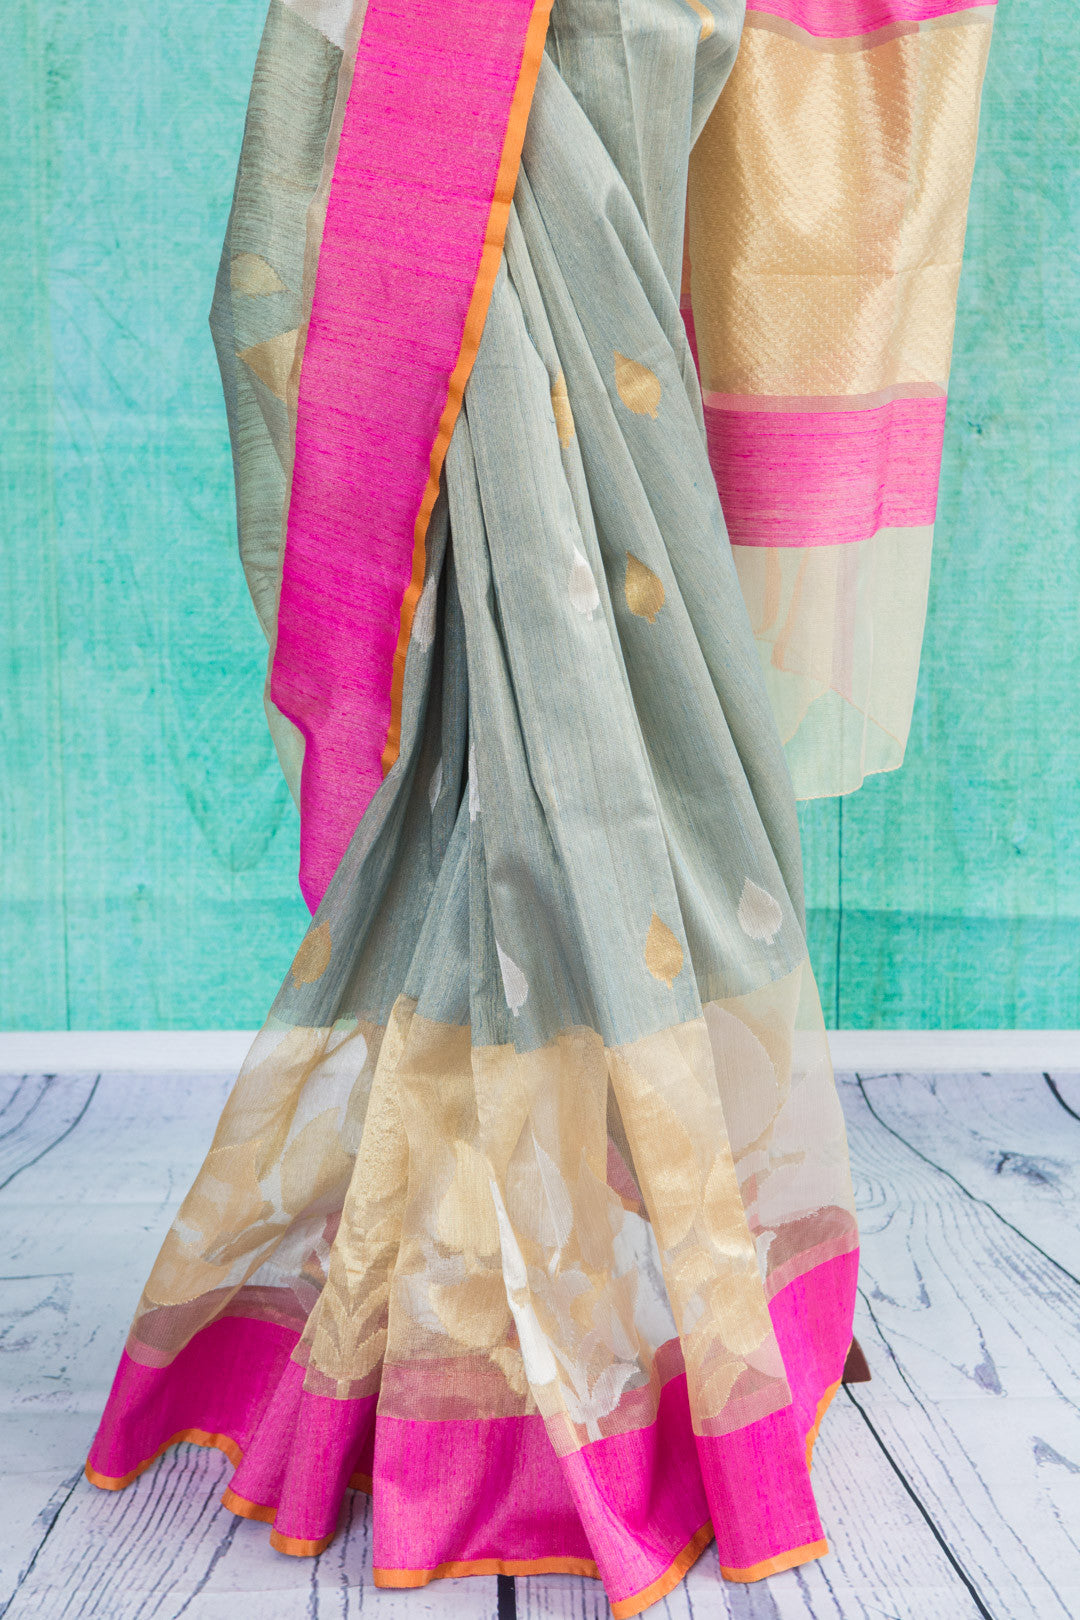 90b993-pink-silver-gold-saree-skirt-view